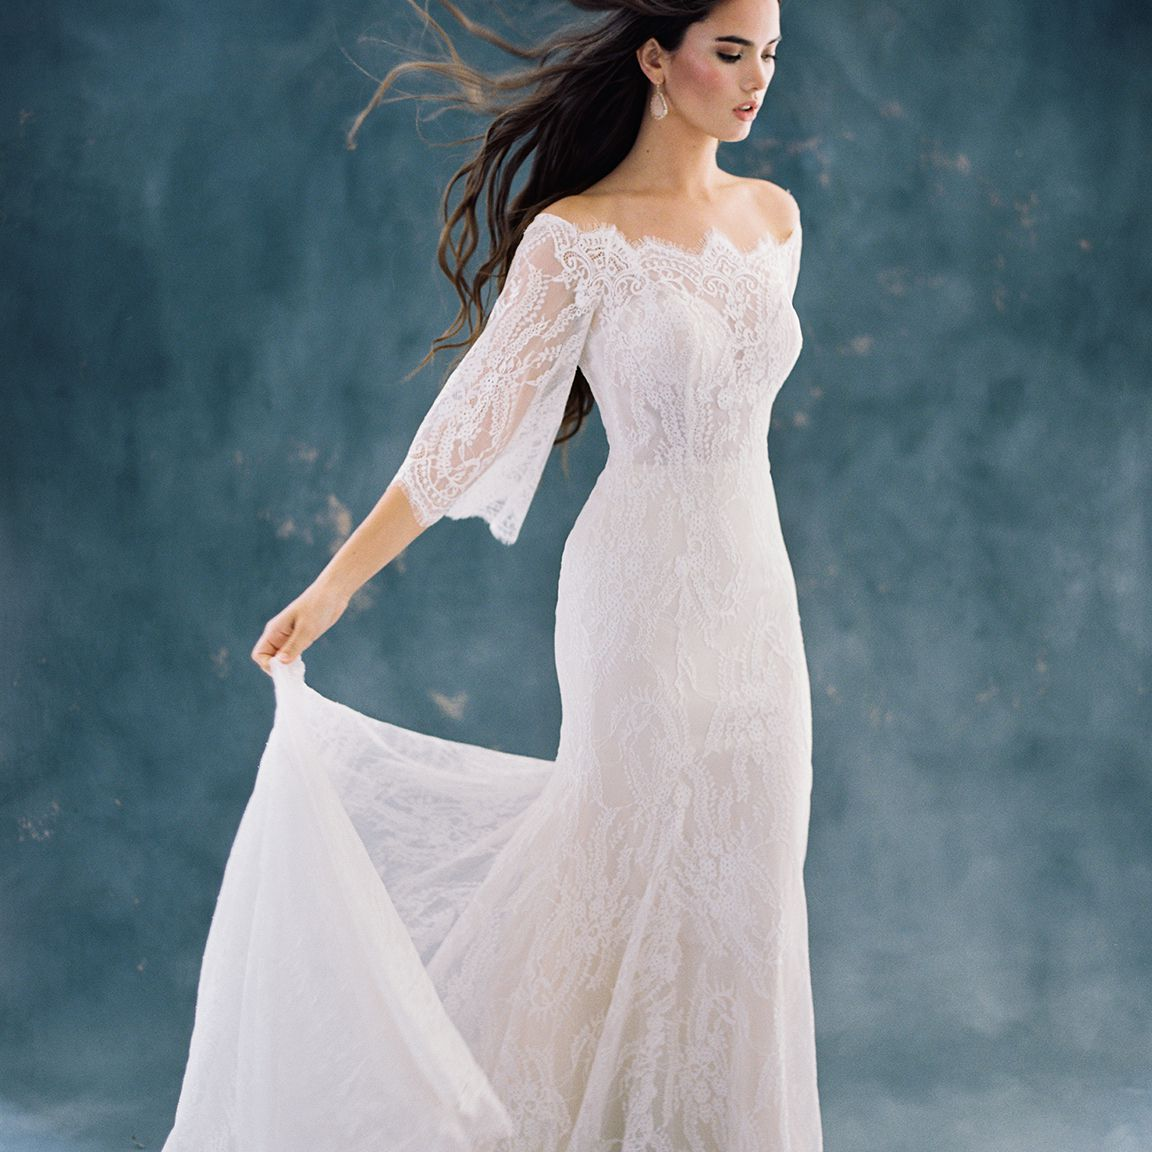 Model in lacy off-the-shoulder fit-and-flare gown with three-quarter sleeves